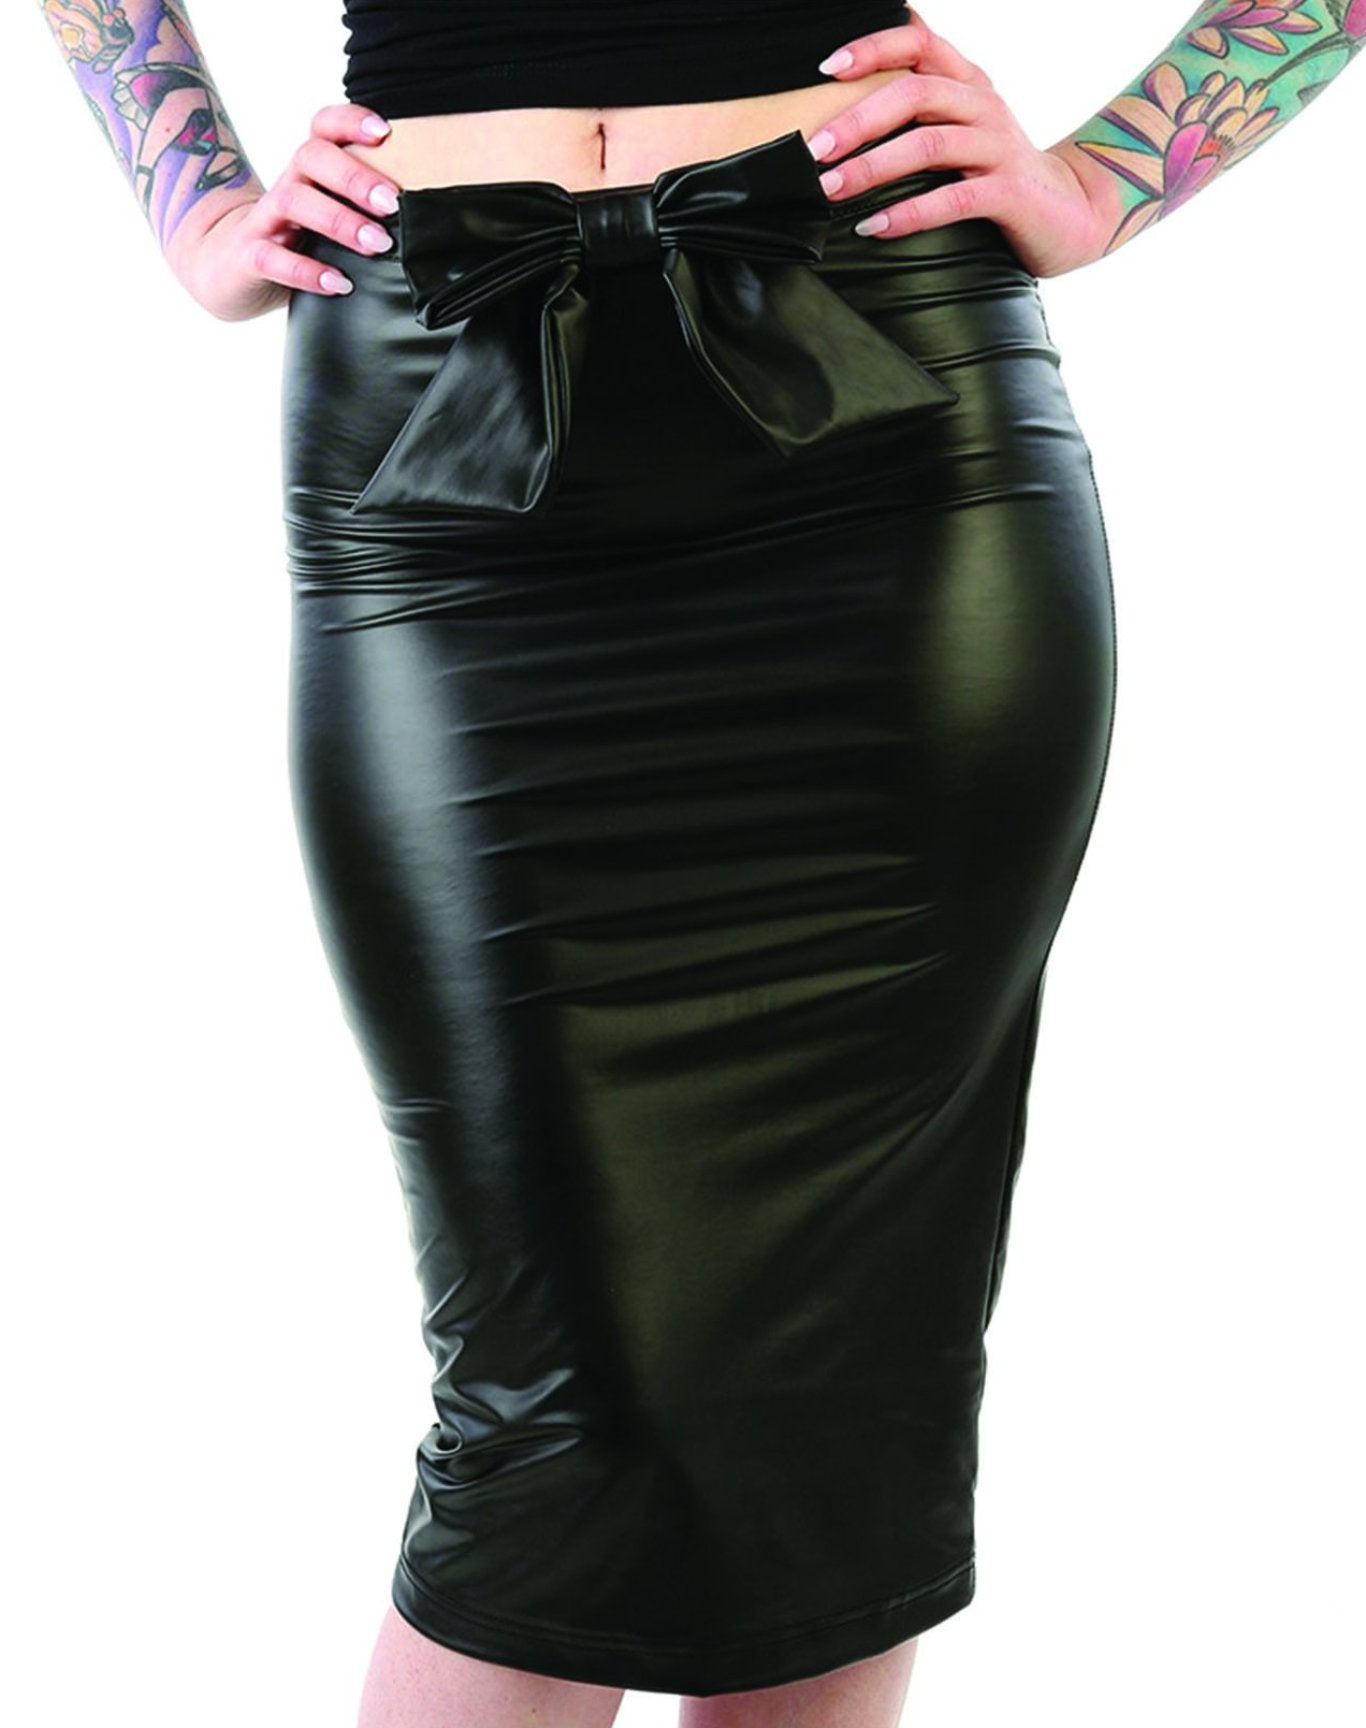 The PLEATHER BOW Pencil Skirt - ONLY SIZES MEDIUM & LARGE AVAILABLE!